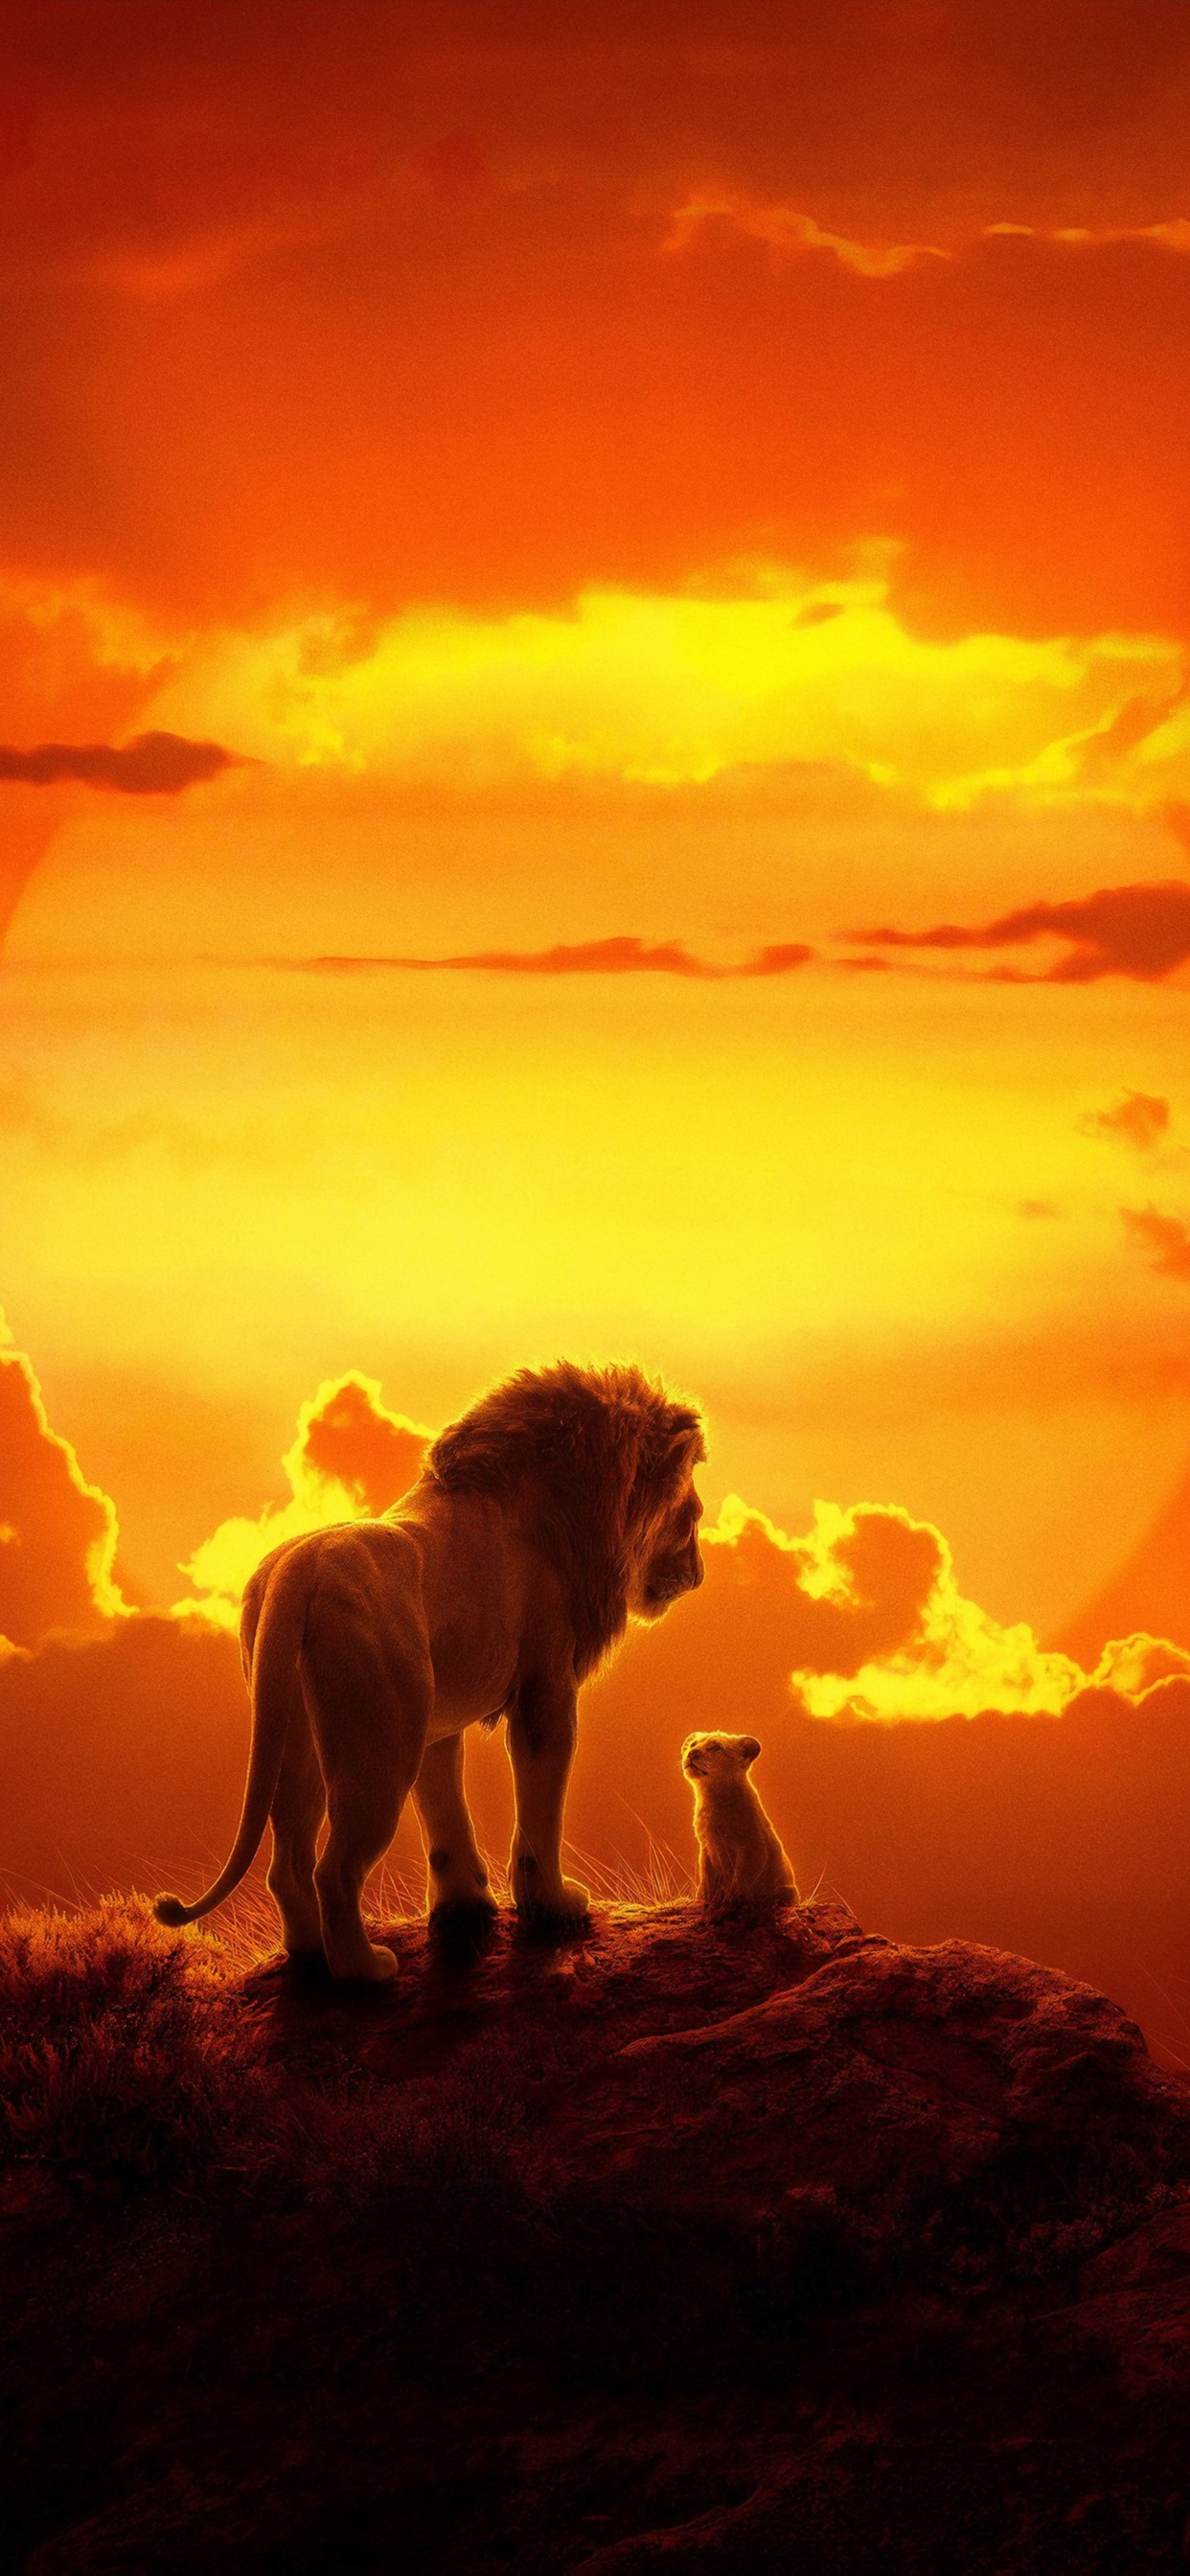 Lion King Wallpaper 2019 , HD Wallpaper & Backgrounds